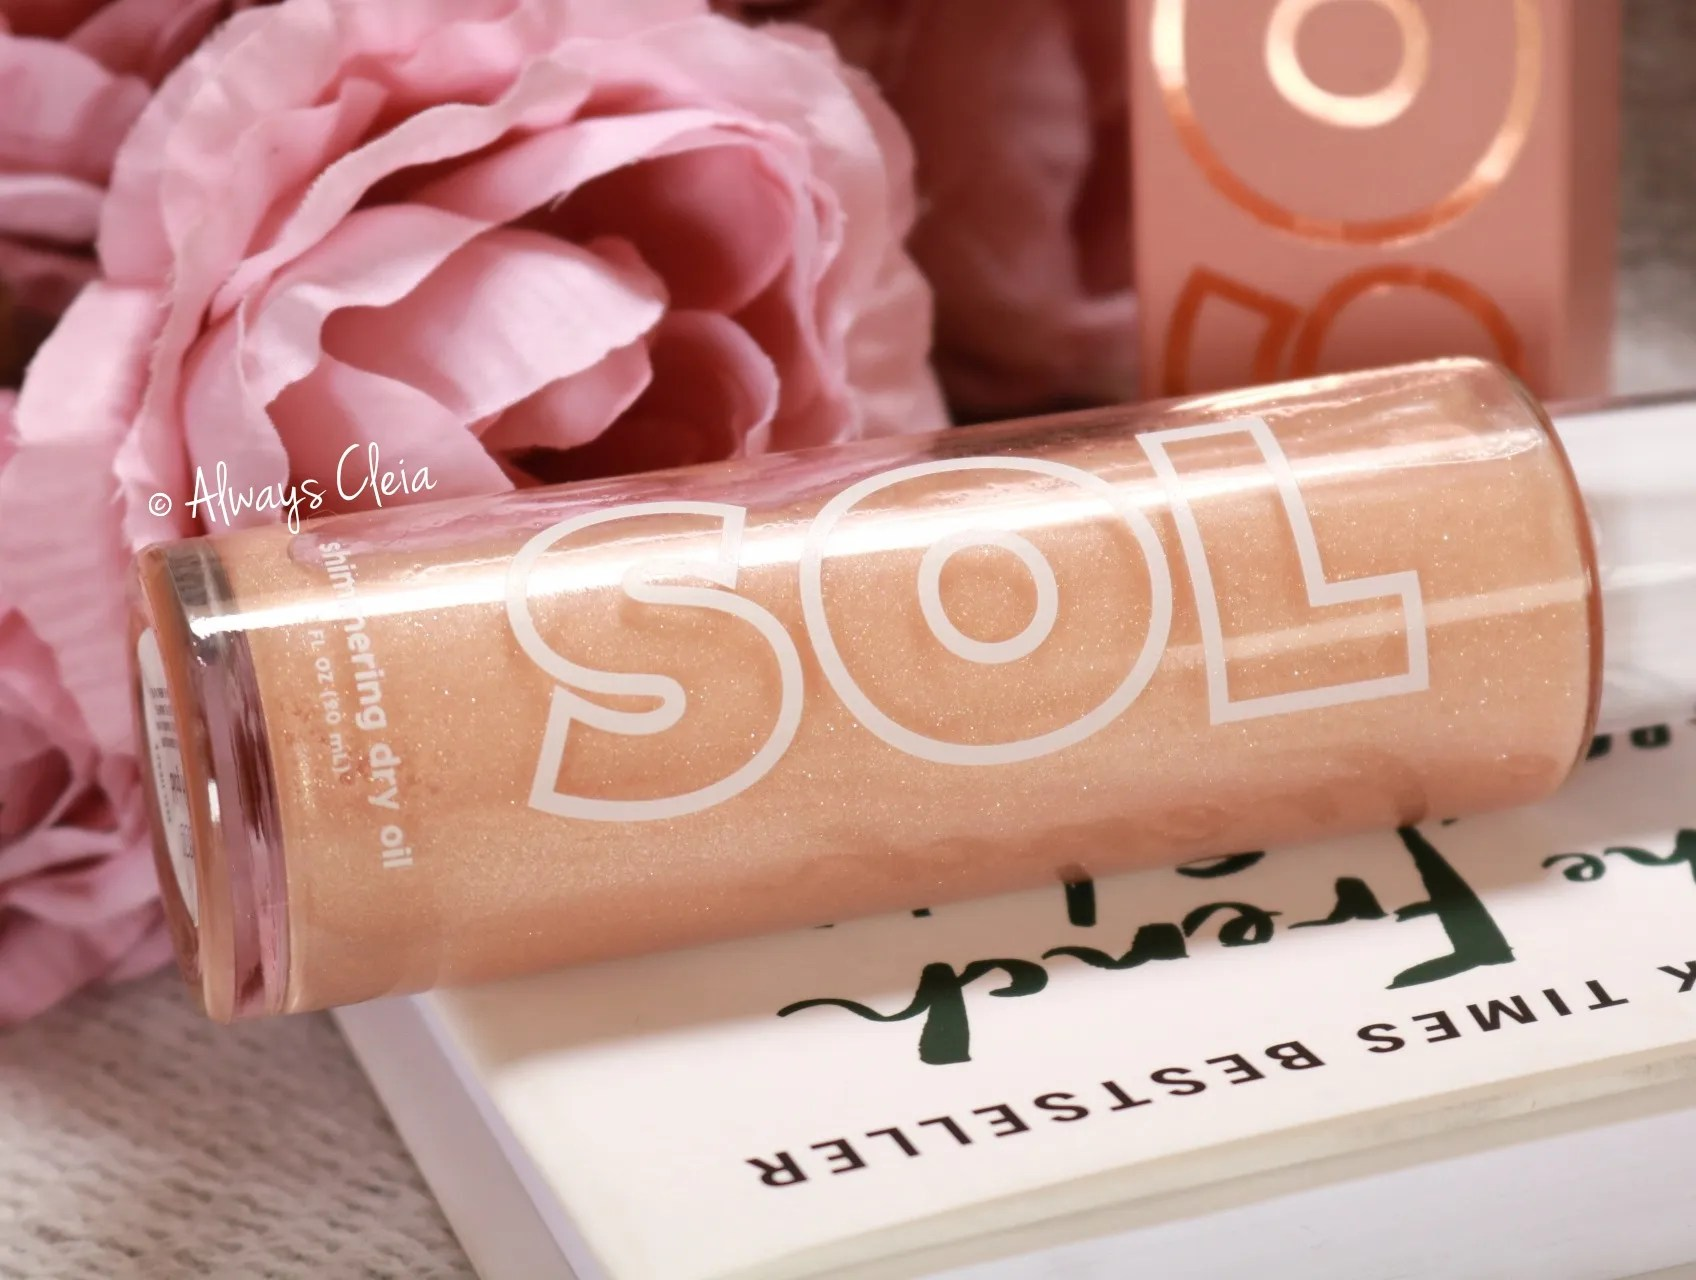 SOL Body Shimmering Dry Oil Review